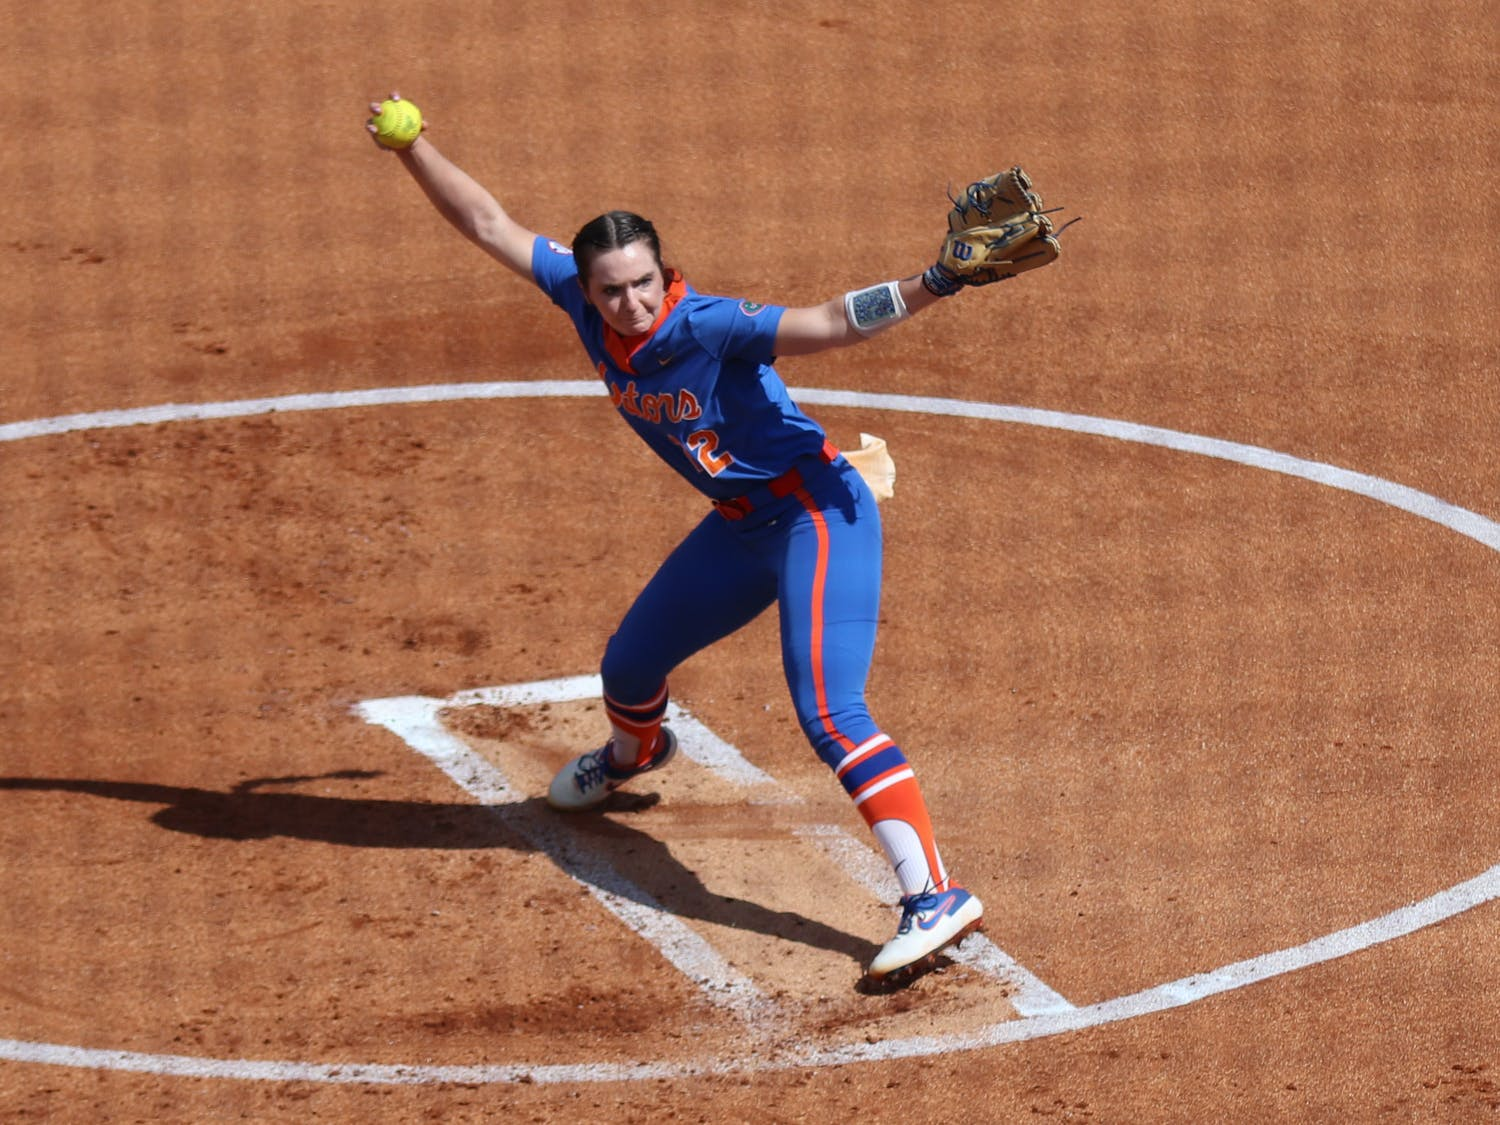 Florida's Elizabeth Hightower pitches against Louisville on February 27. Hightower tossed her first career no-hitter against South Florida Sunday to advance Florida to the Super Regional against Georgia.